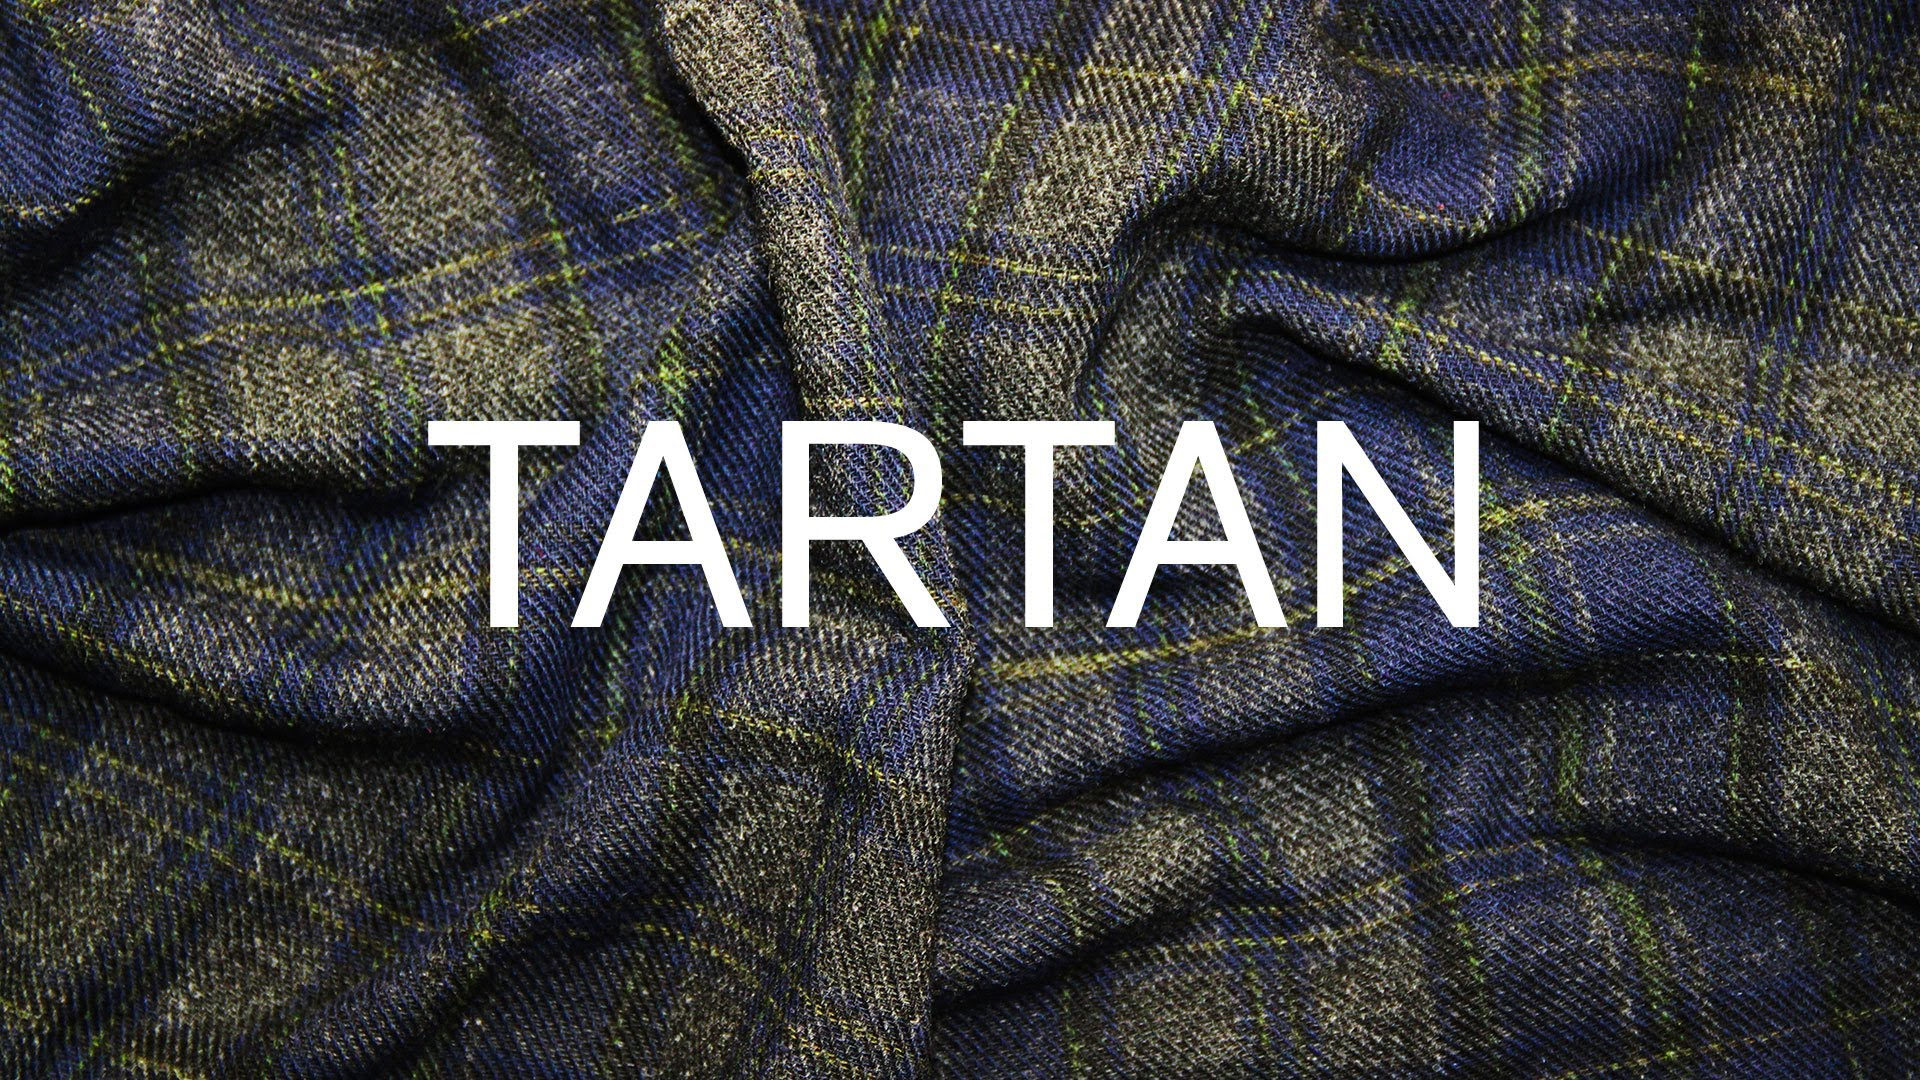 Tartan With Tiger Of Sweden